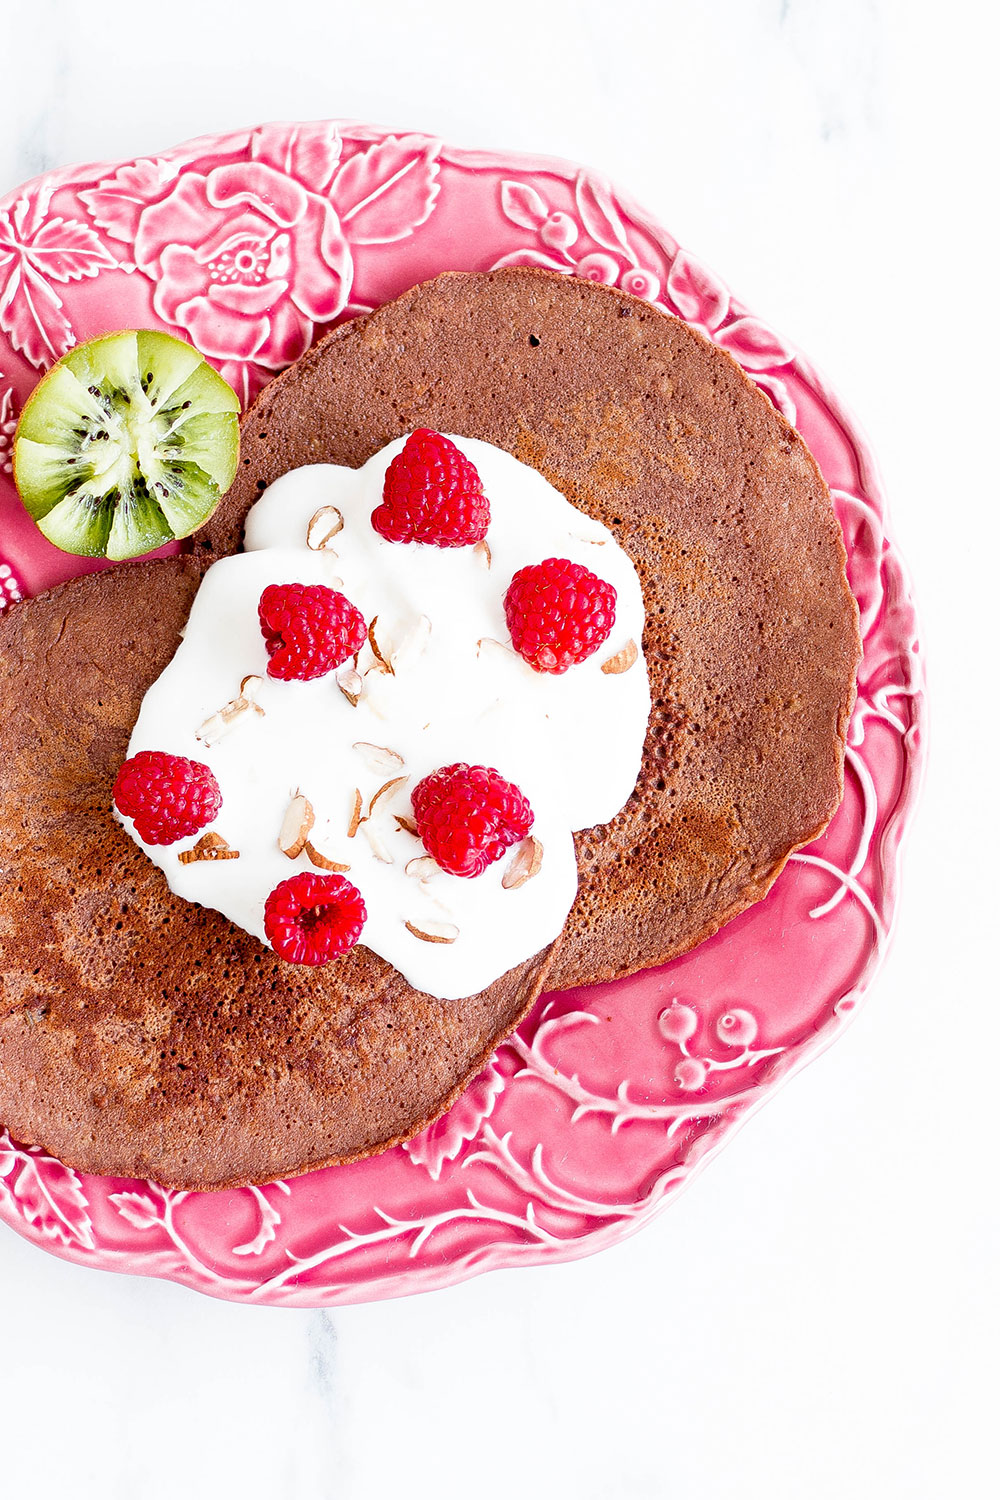 Pancakes are a breakfast favorite and these cacao and banana pancakes provide many essential nutrients without any added sugars or fats! https://www.spotebi.com/recipes/gluten-free-cacao-banana-pancakes/